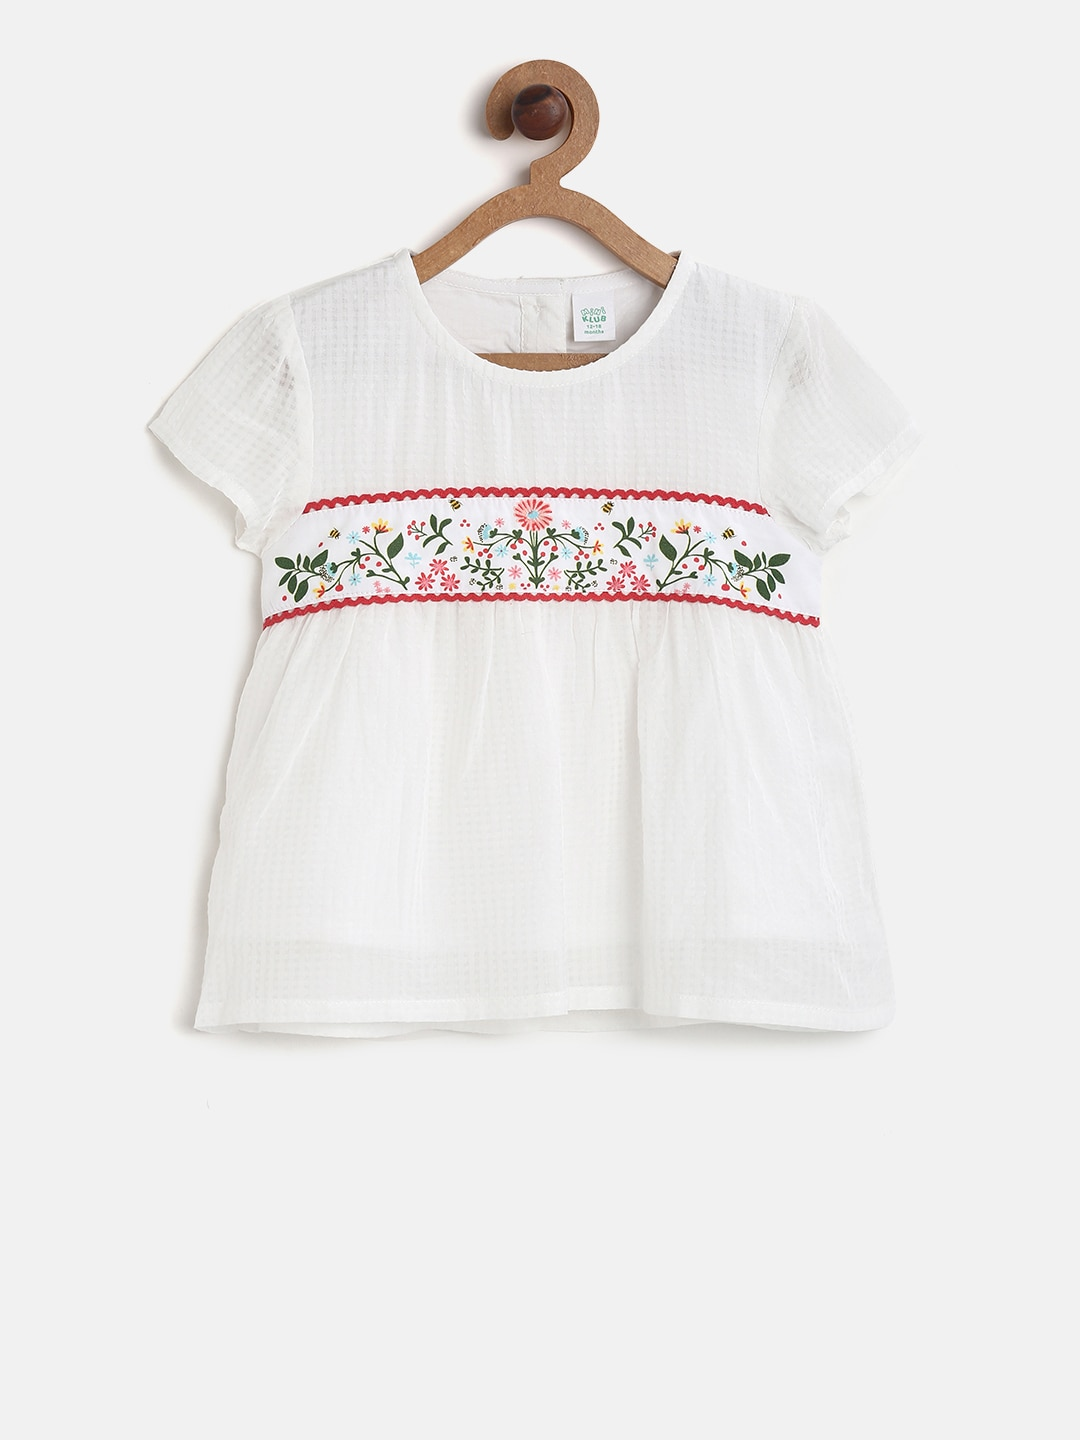 7848a99d667066 Girls Tops - Buy Stylish Top for Girls Online in India